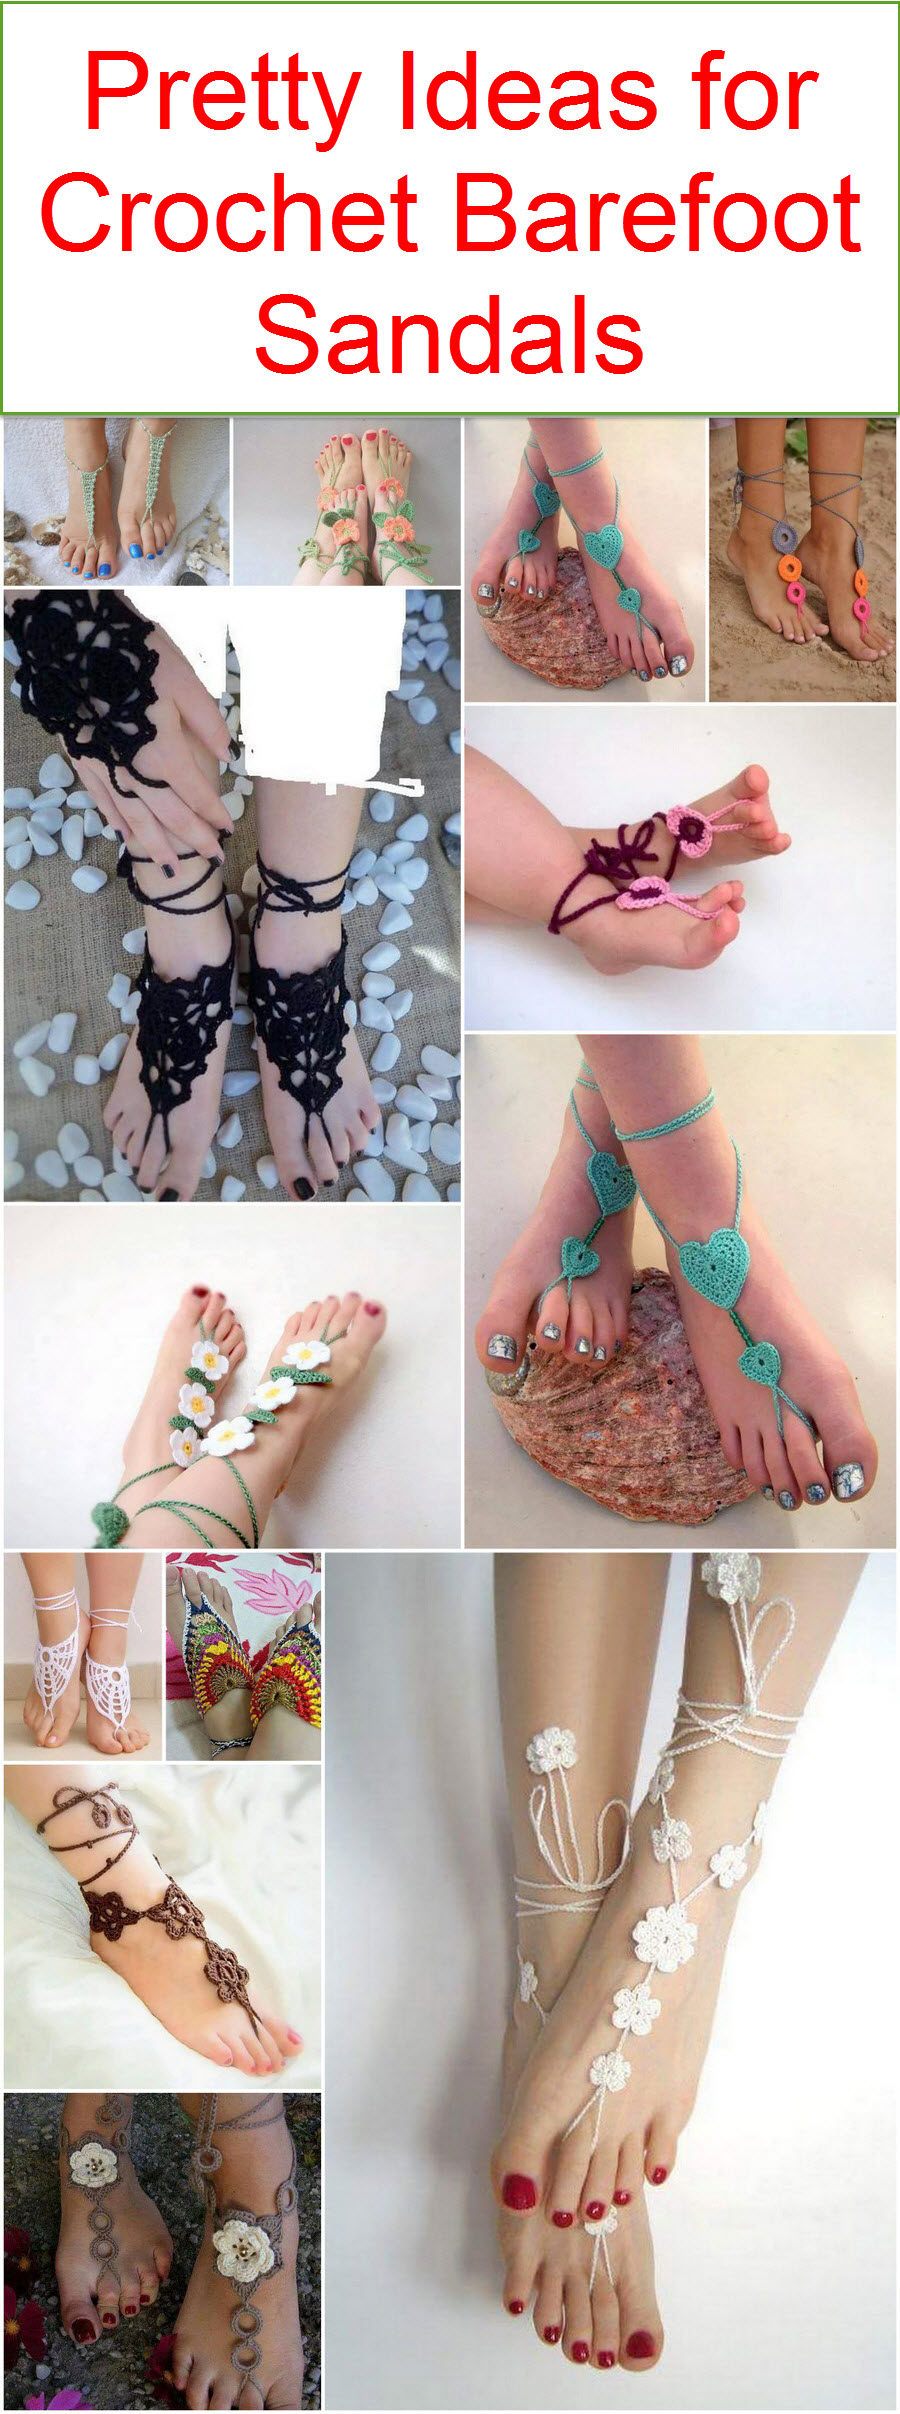 pretty-ideas-for-crochet-barefoot-sandals